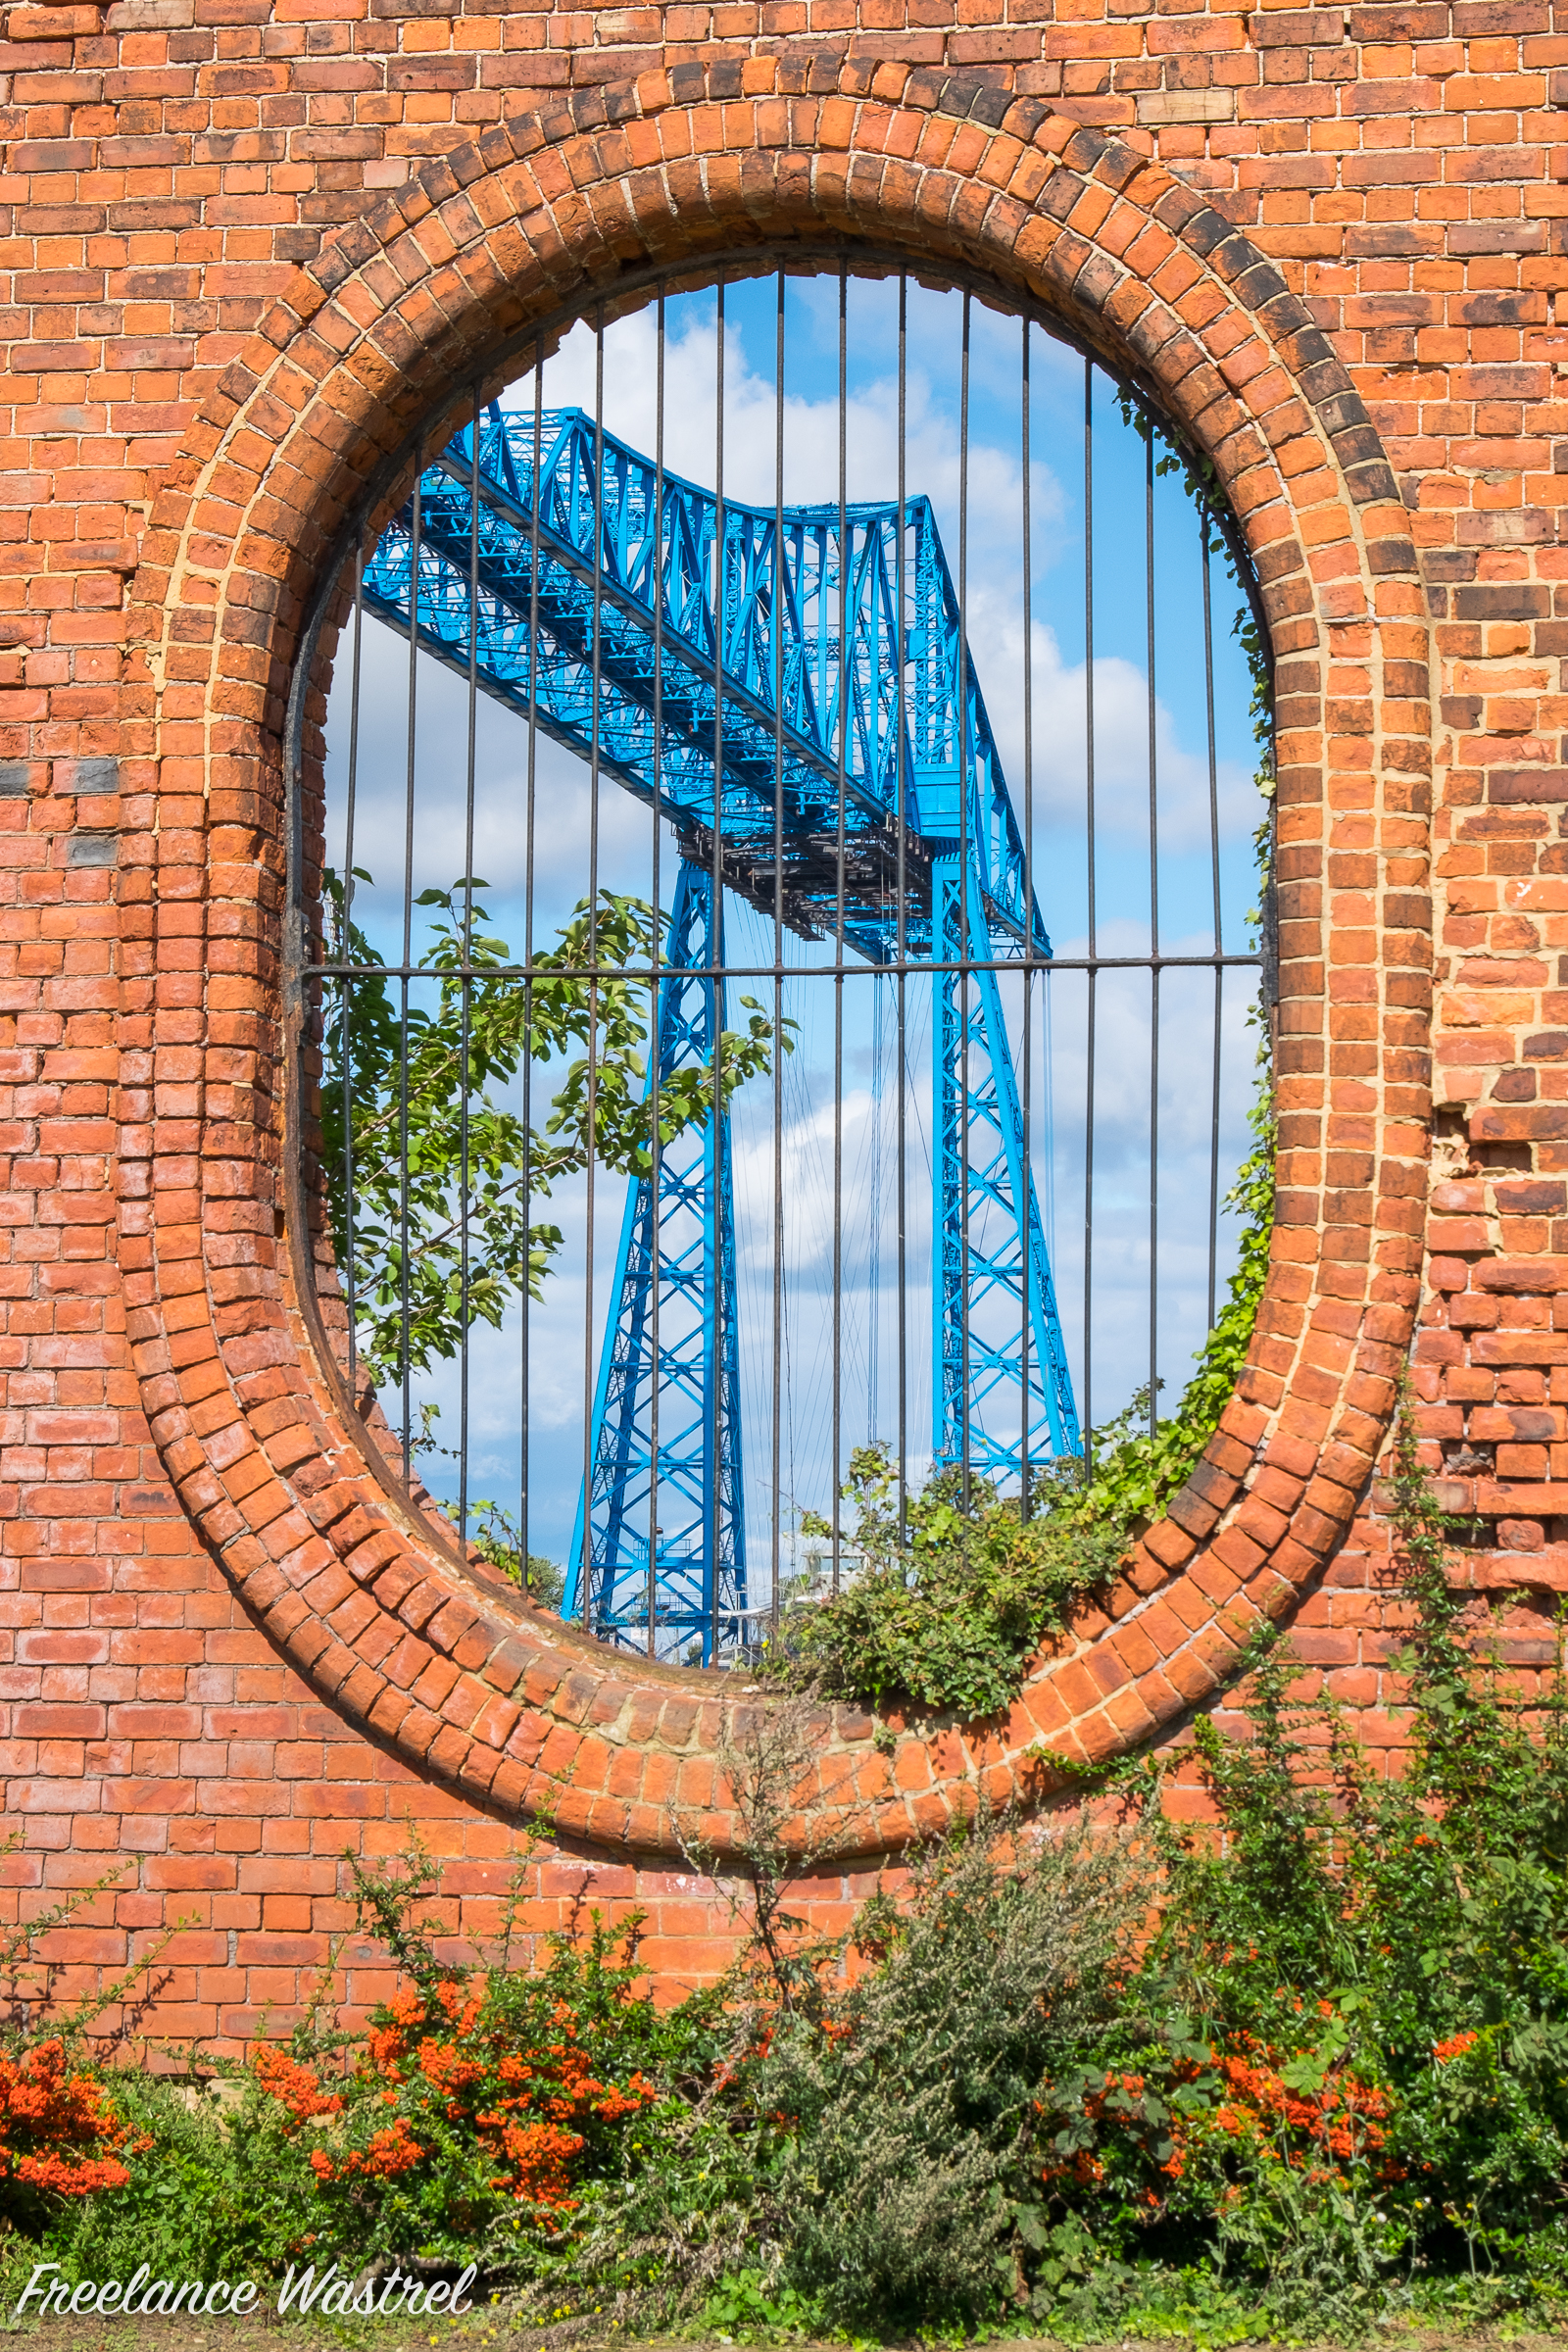 Tees Transporter Bridge-20170911d